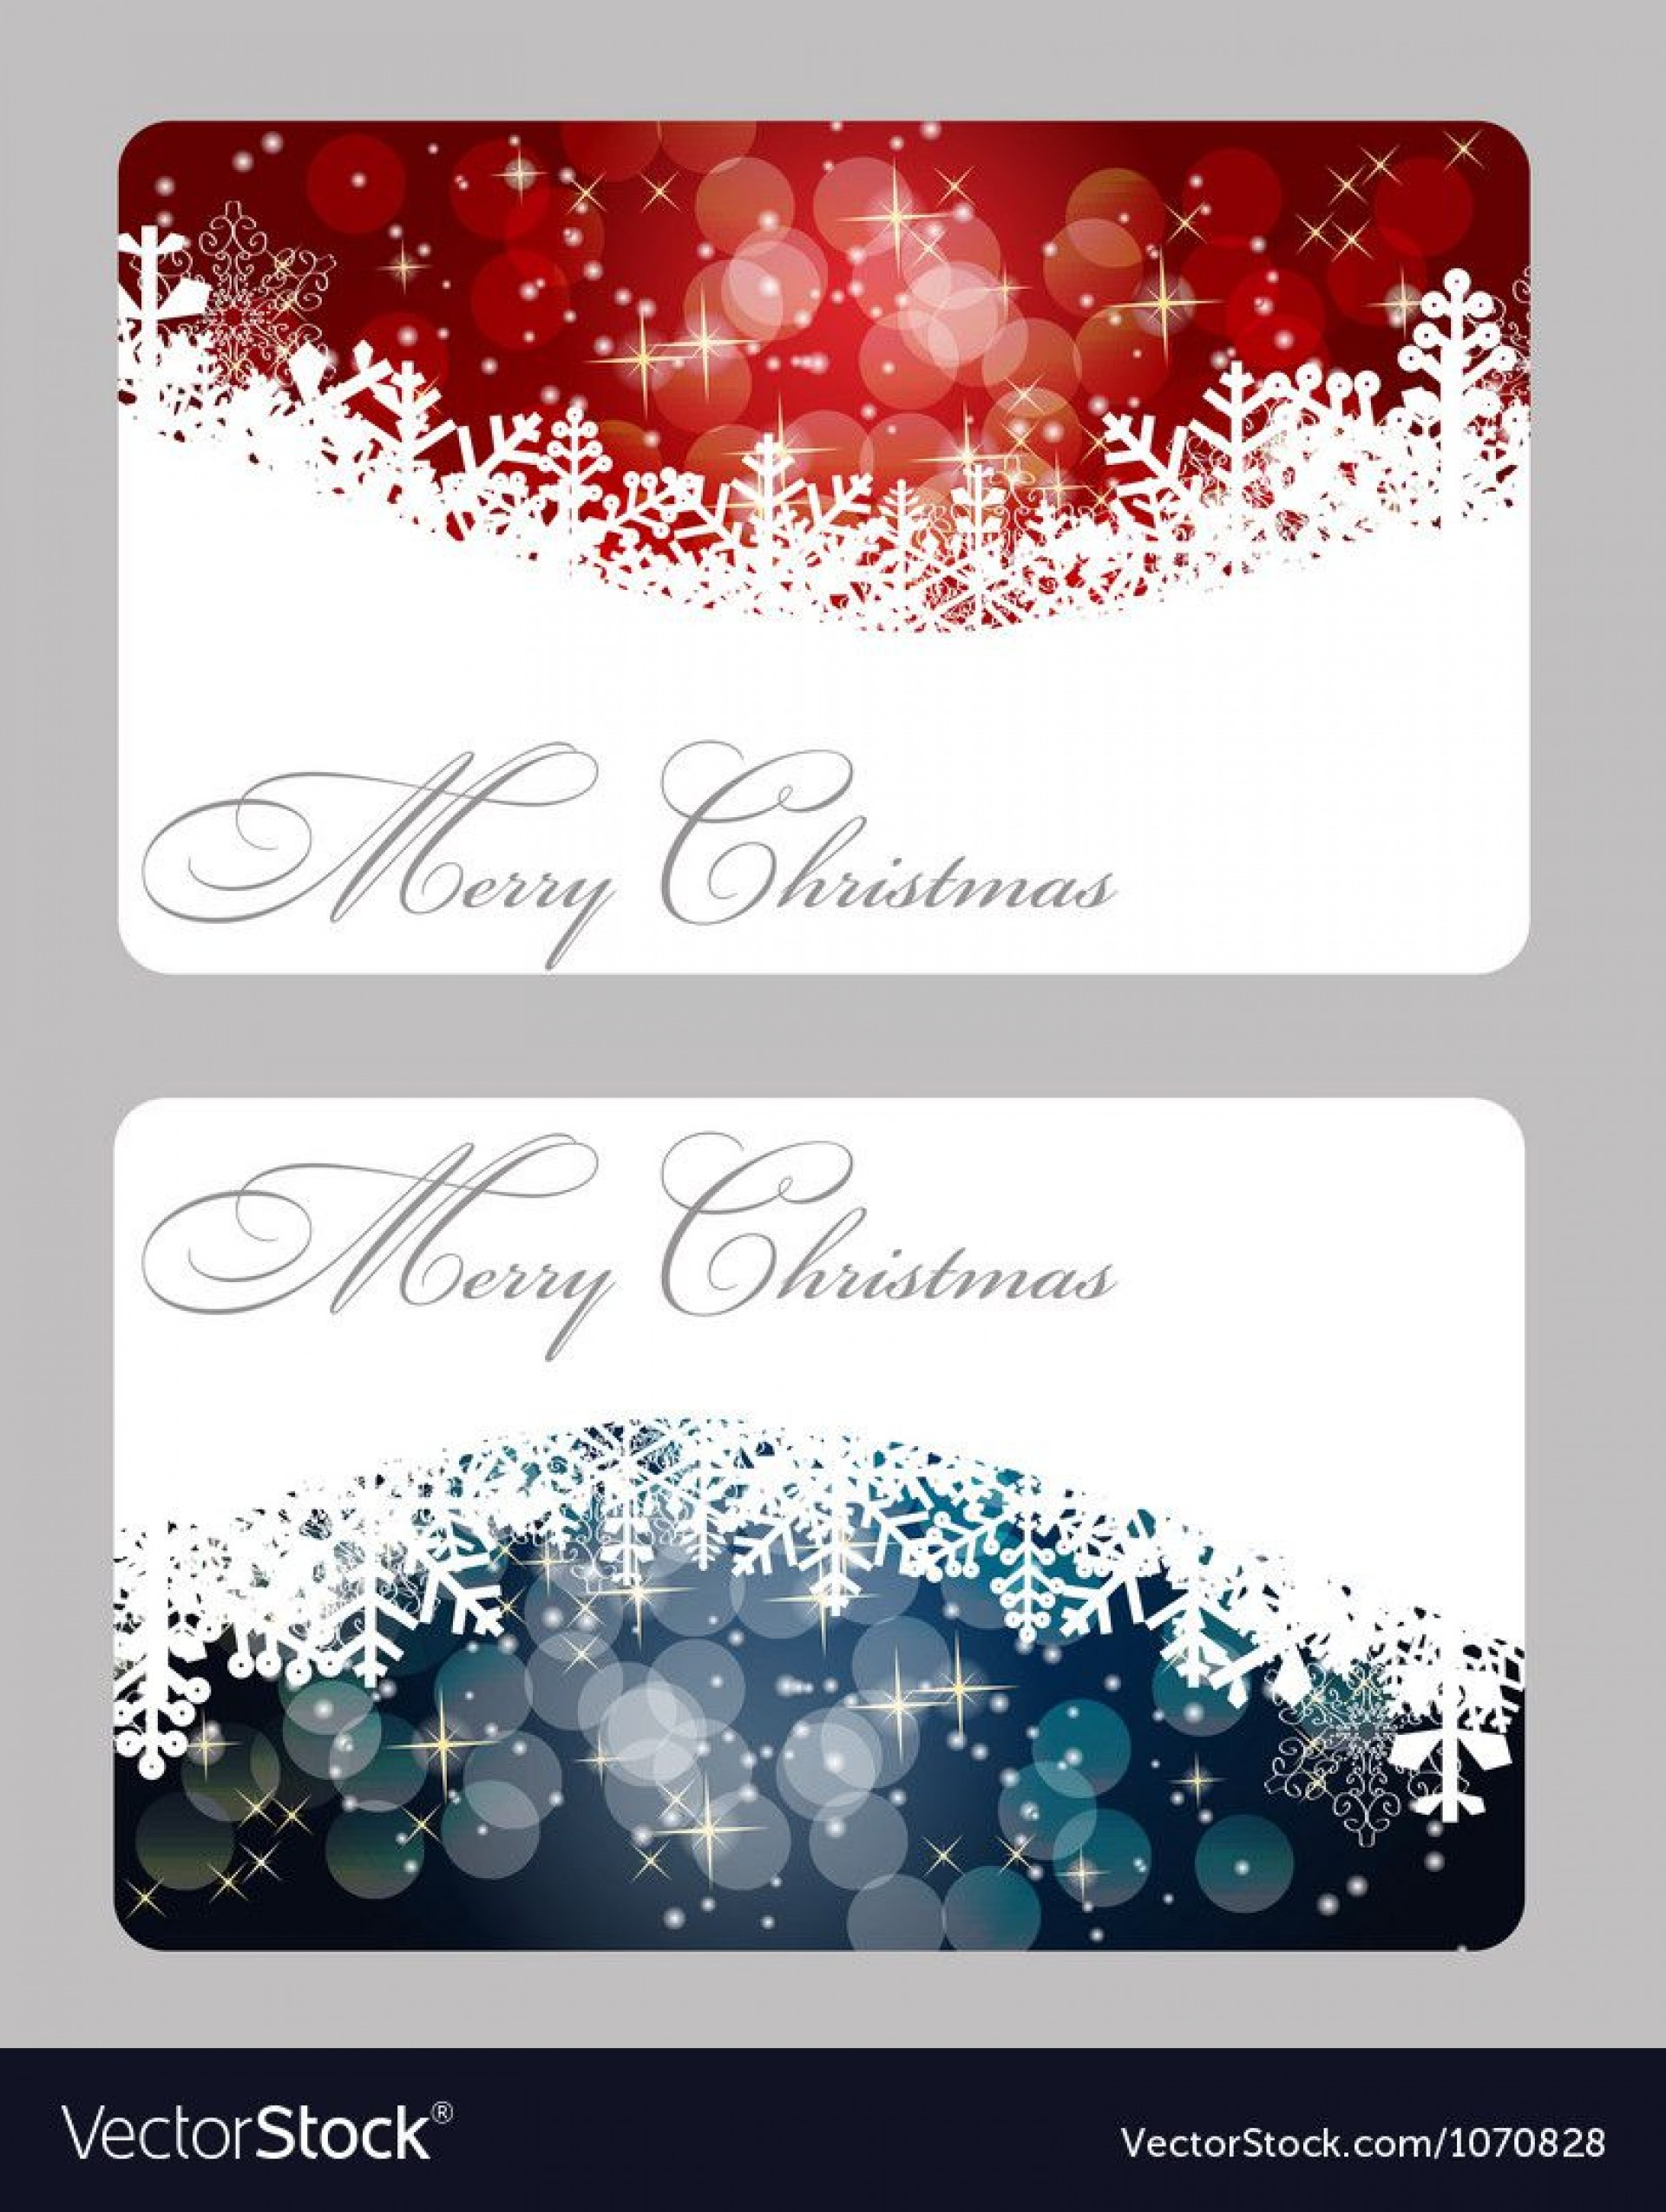 006 Frightening Free Photo Christma Card Template Concept  Templates For Photoshop Online1920